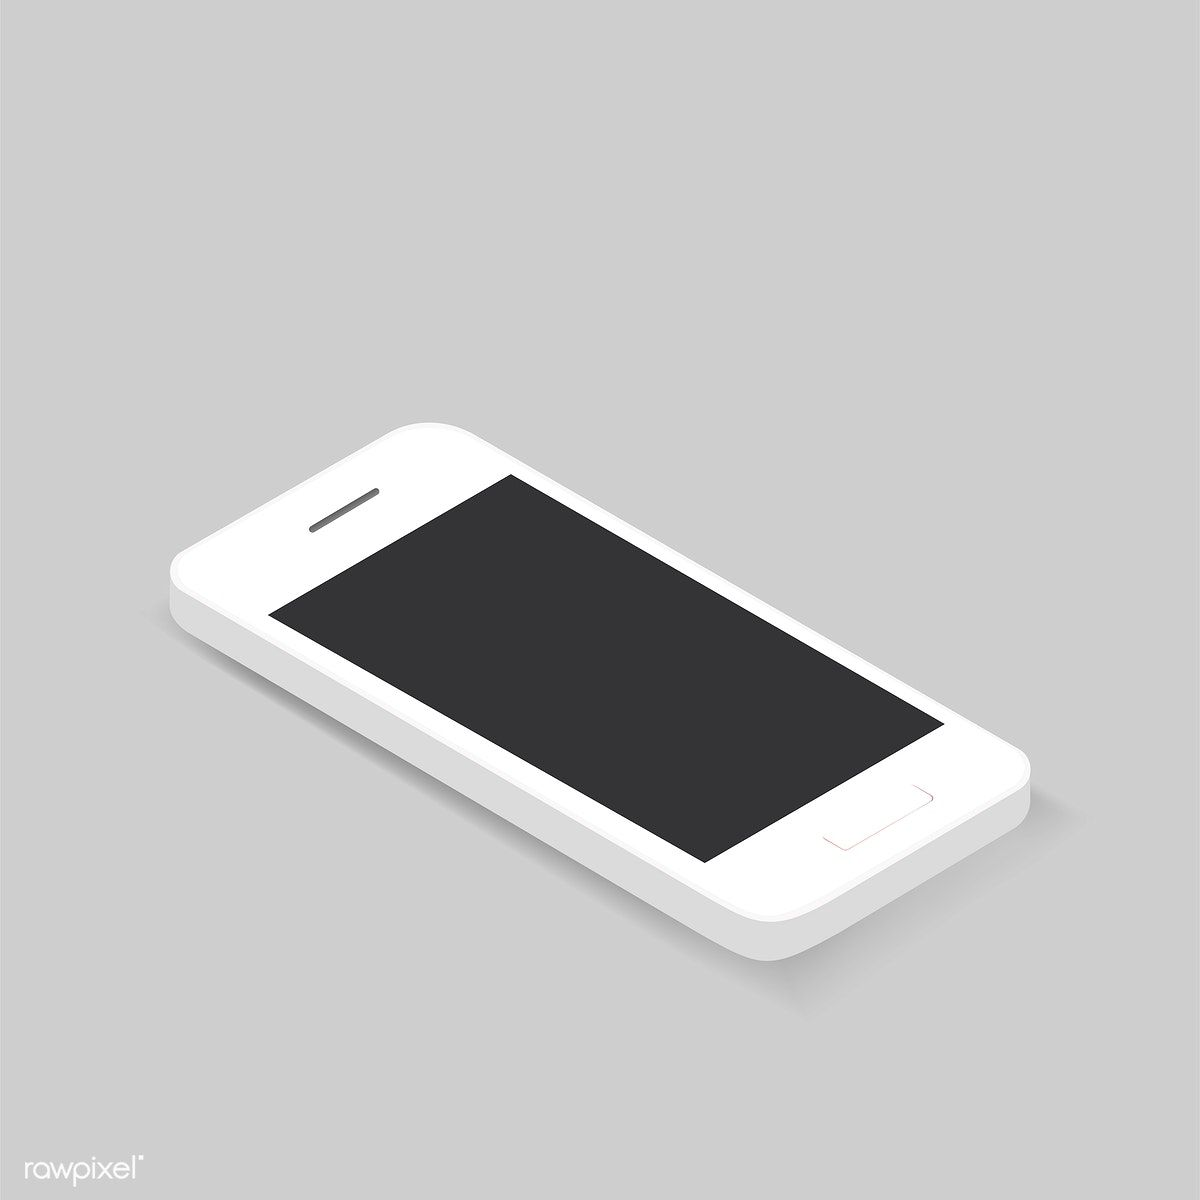 Vector of 3D smart phone icon on background free image